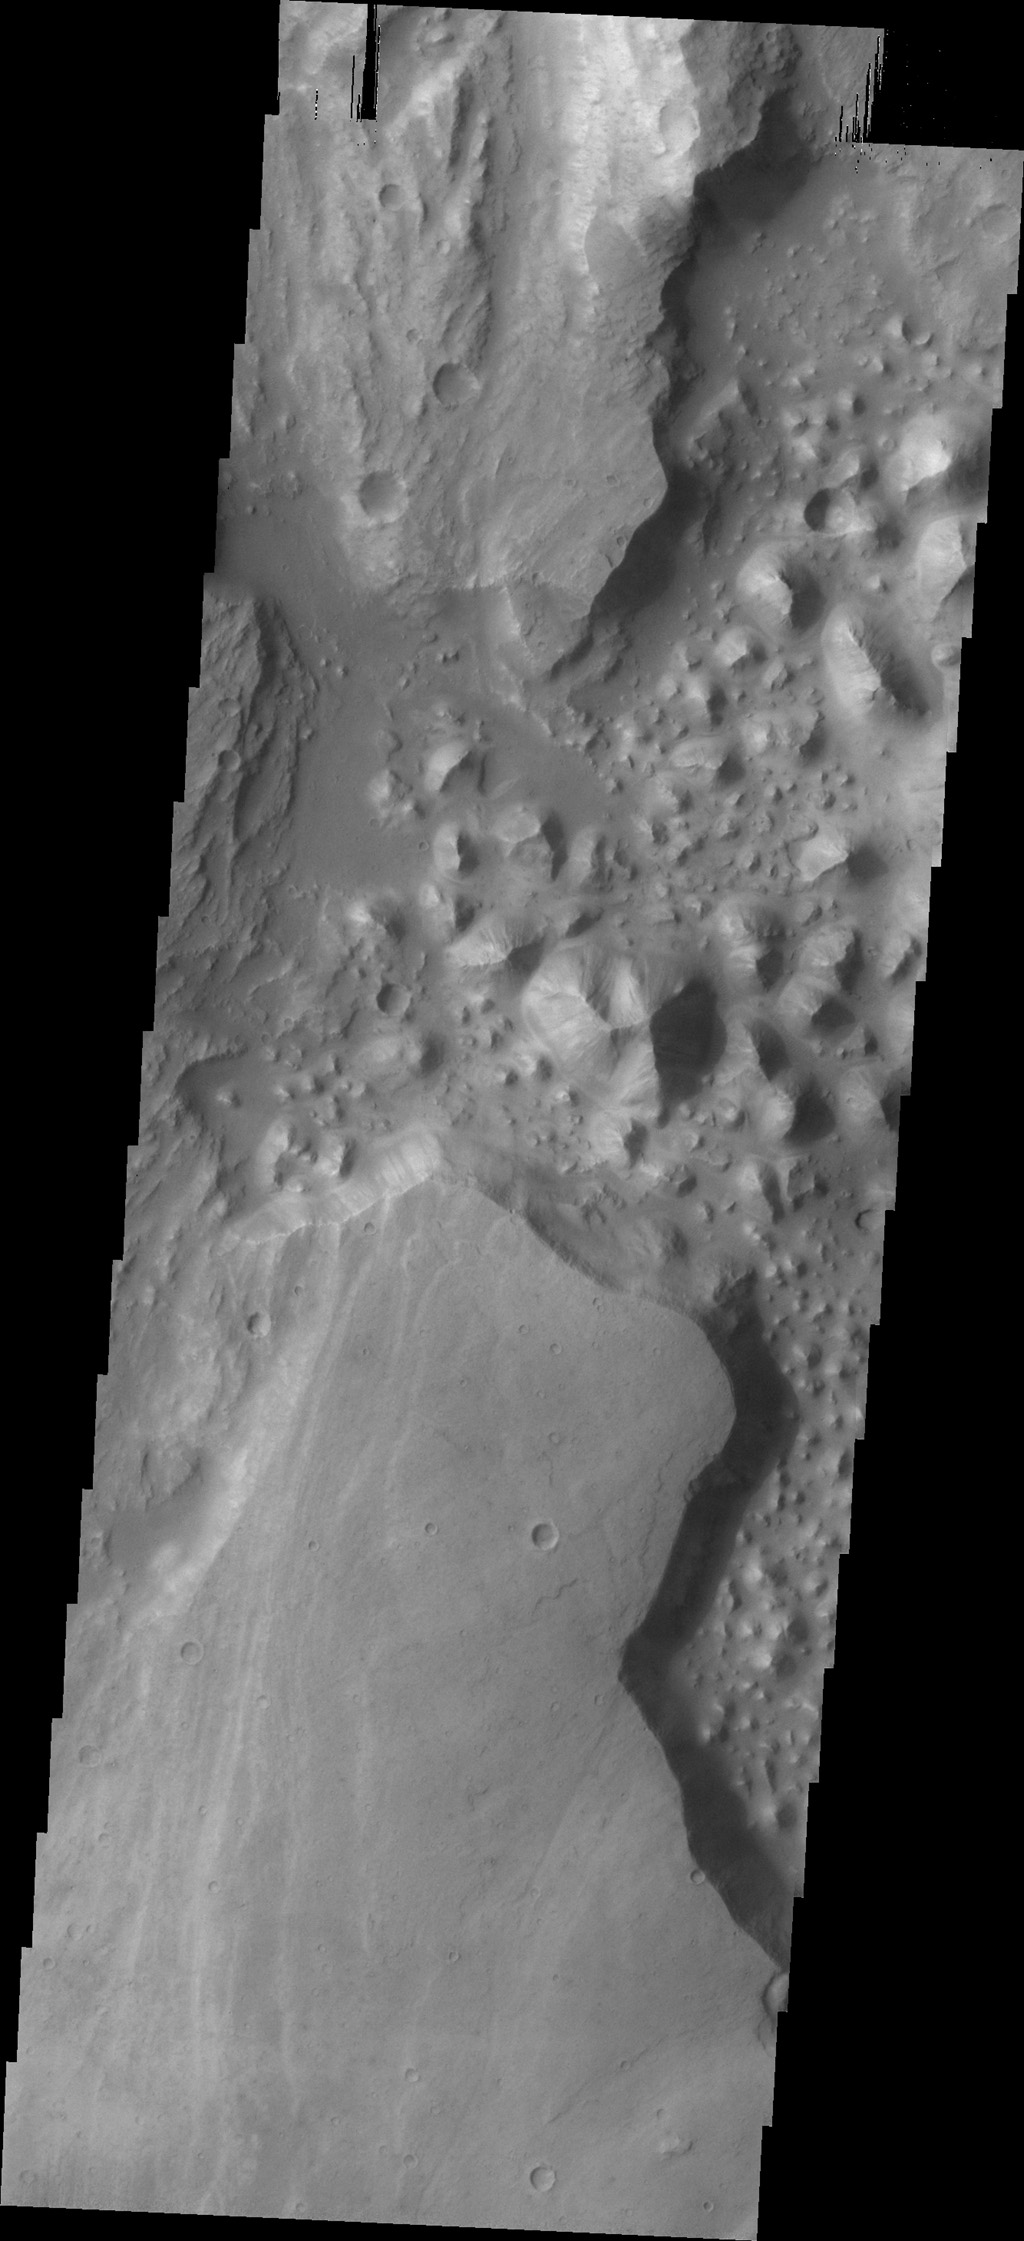 The hills (chaos) in this image from NASA's 2001 Mars Odyssey spacecraft are located between Stege Crater, just outside of the image to the northeast, and Maja Valles (left side of image).